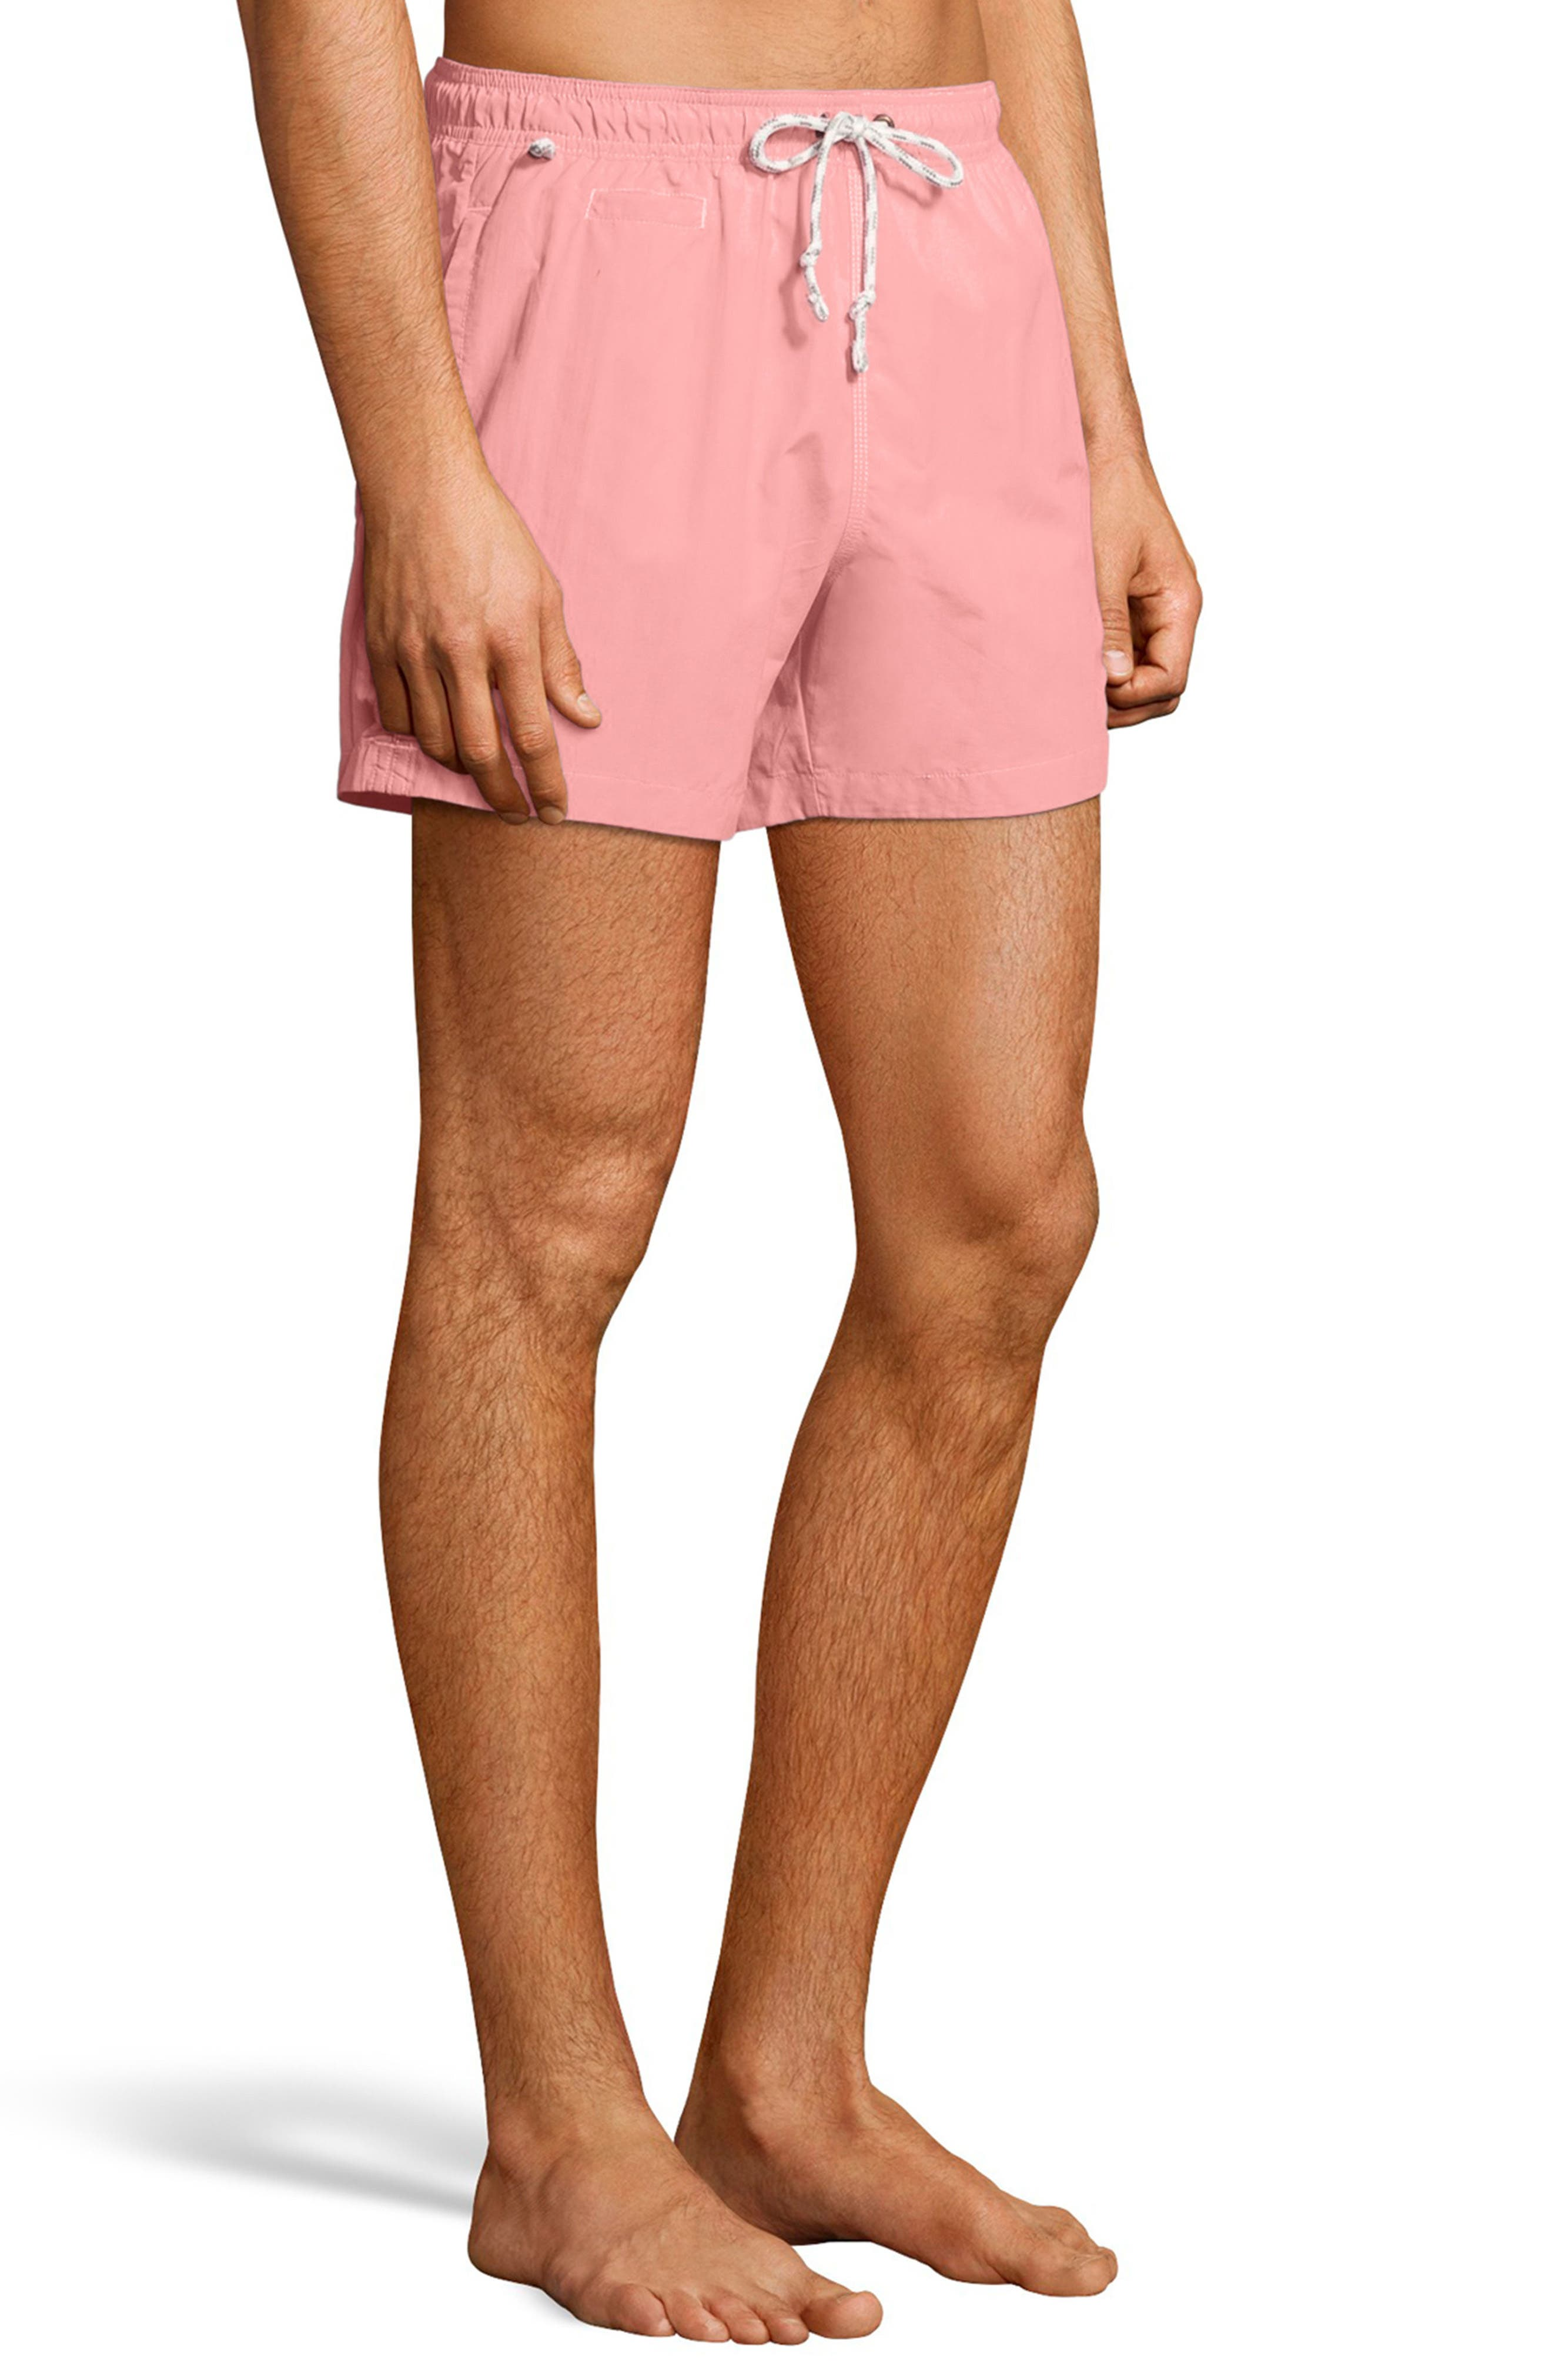 Pacific Sand Swim Trunks,                             Alternate thumbnail 3, color,                             Pink Bow